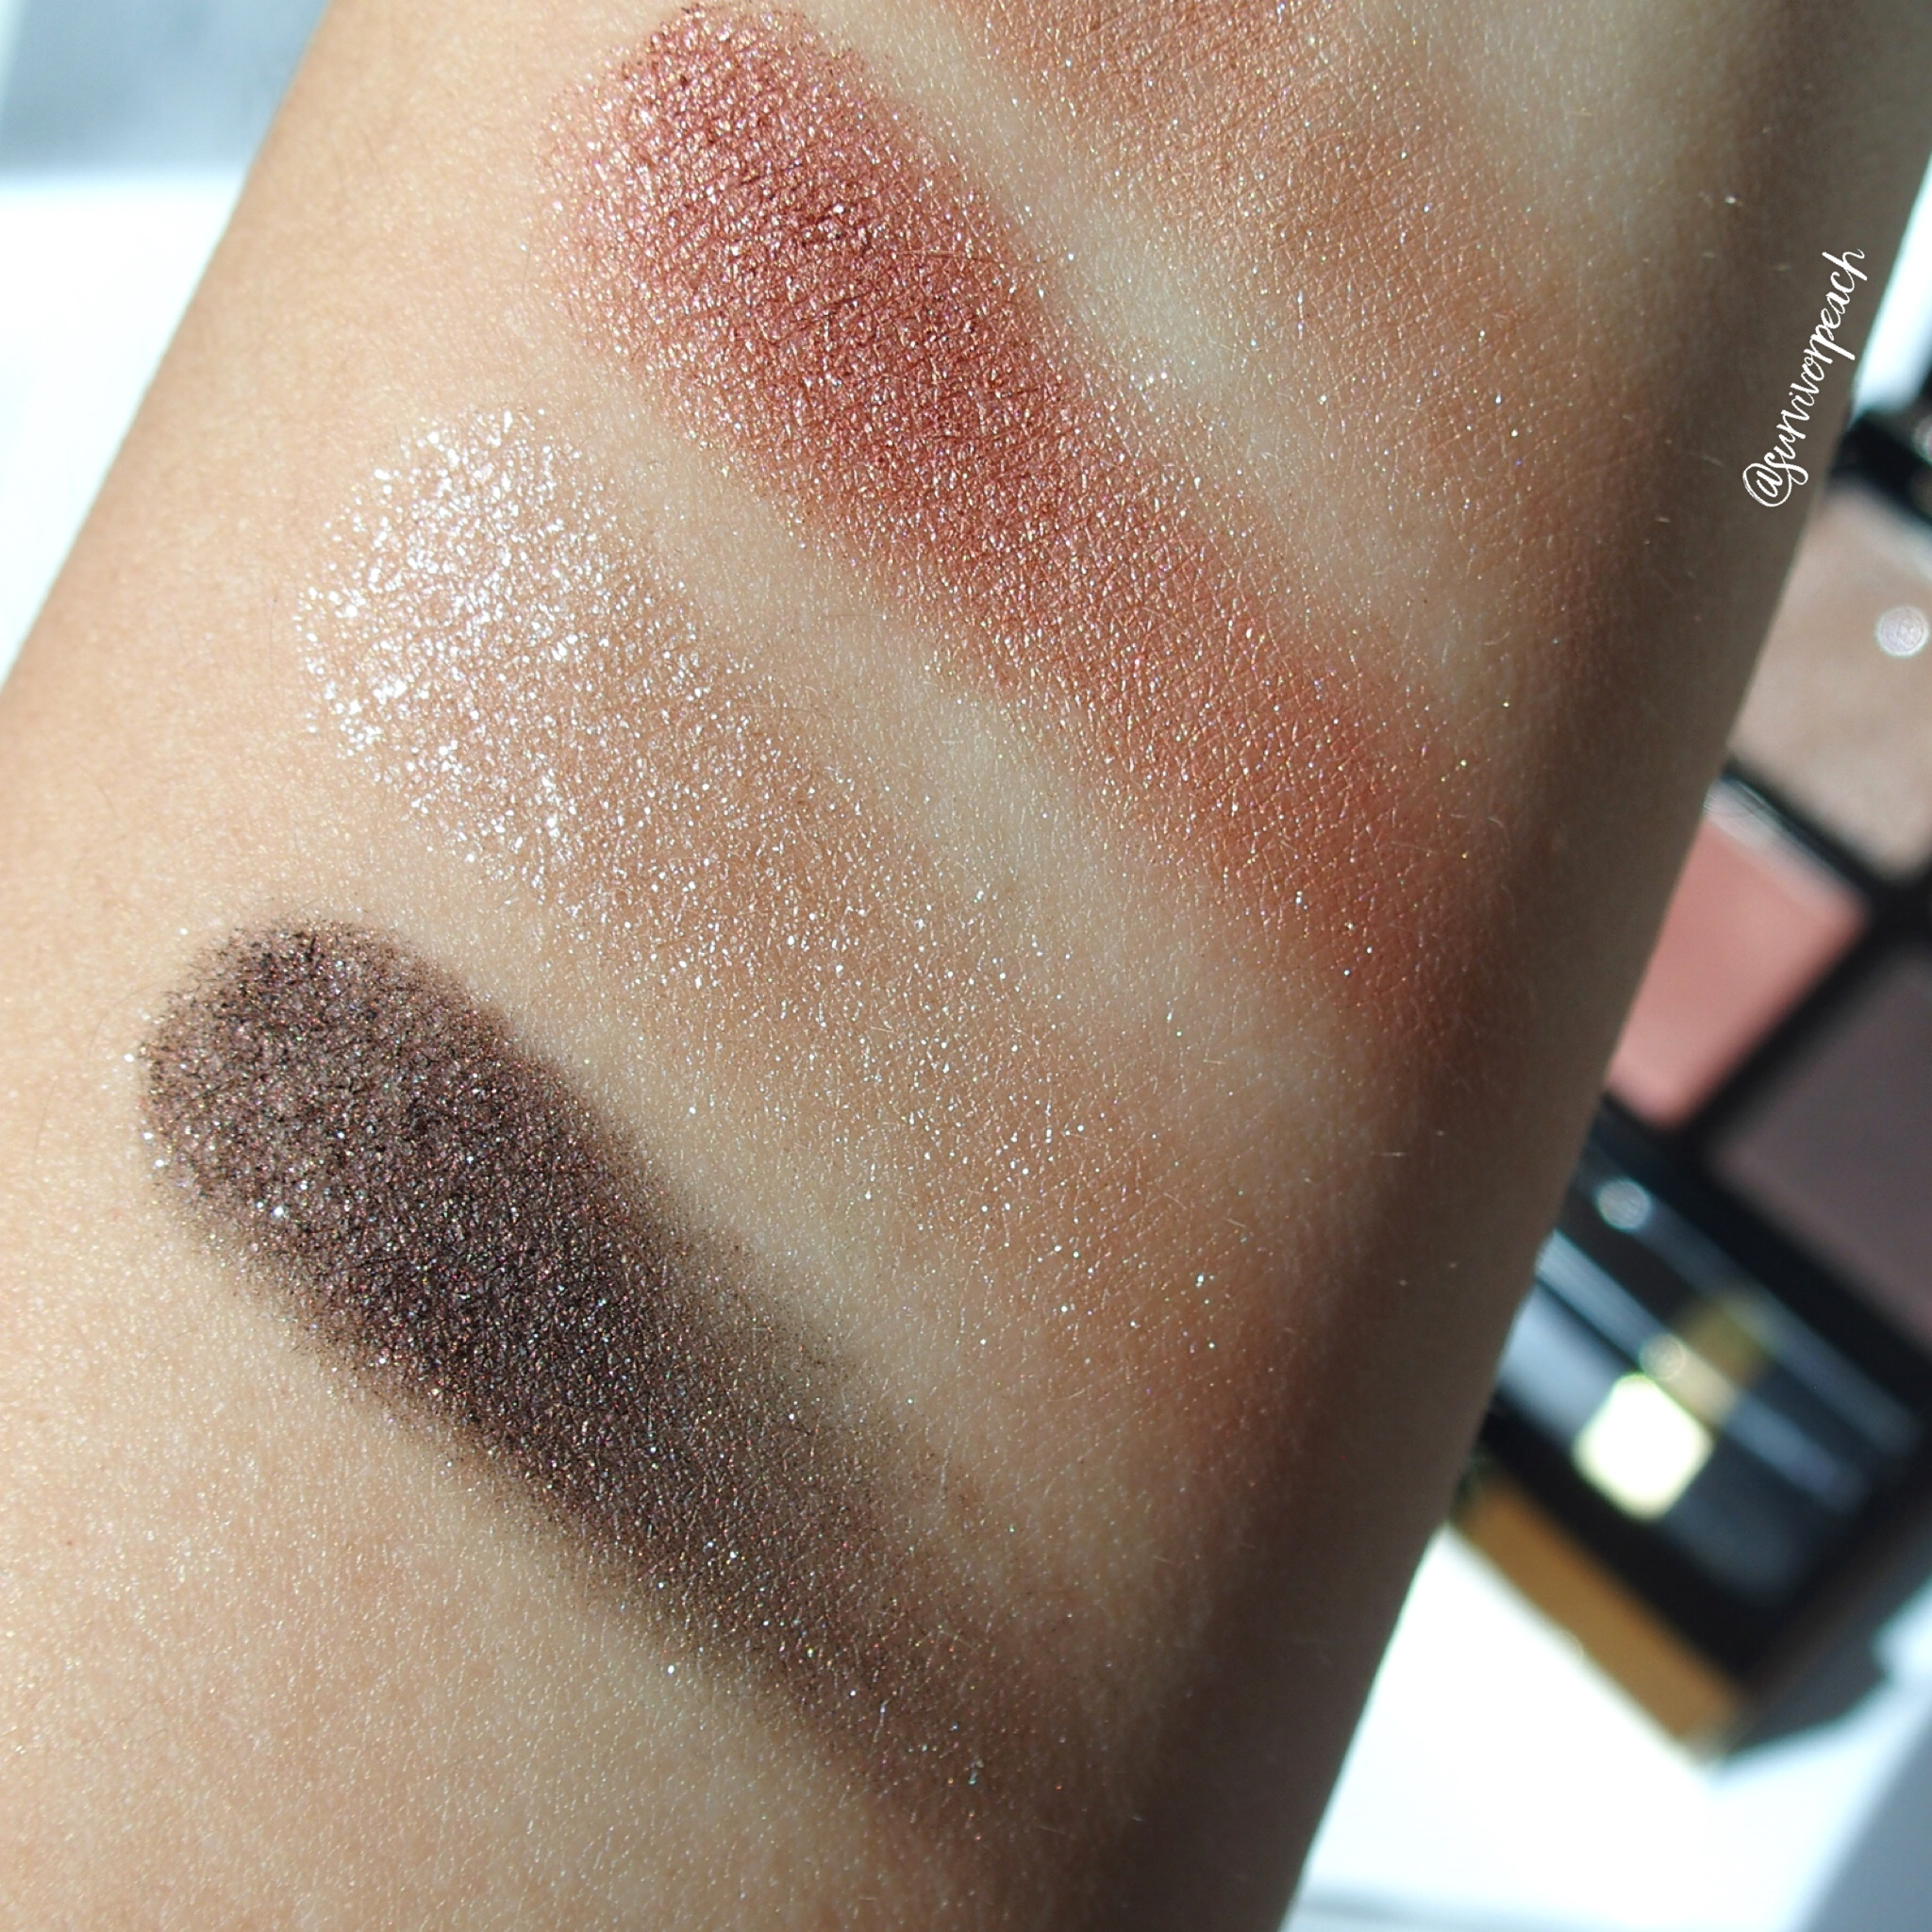 Tomford Beauty Disco Dust Eyeshadow Quad swatches